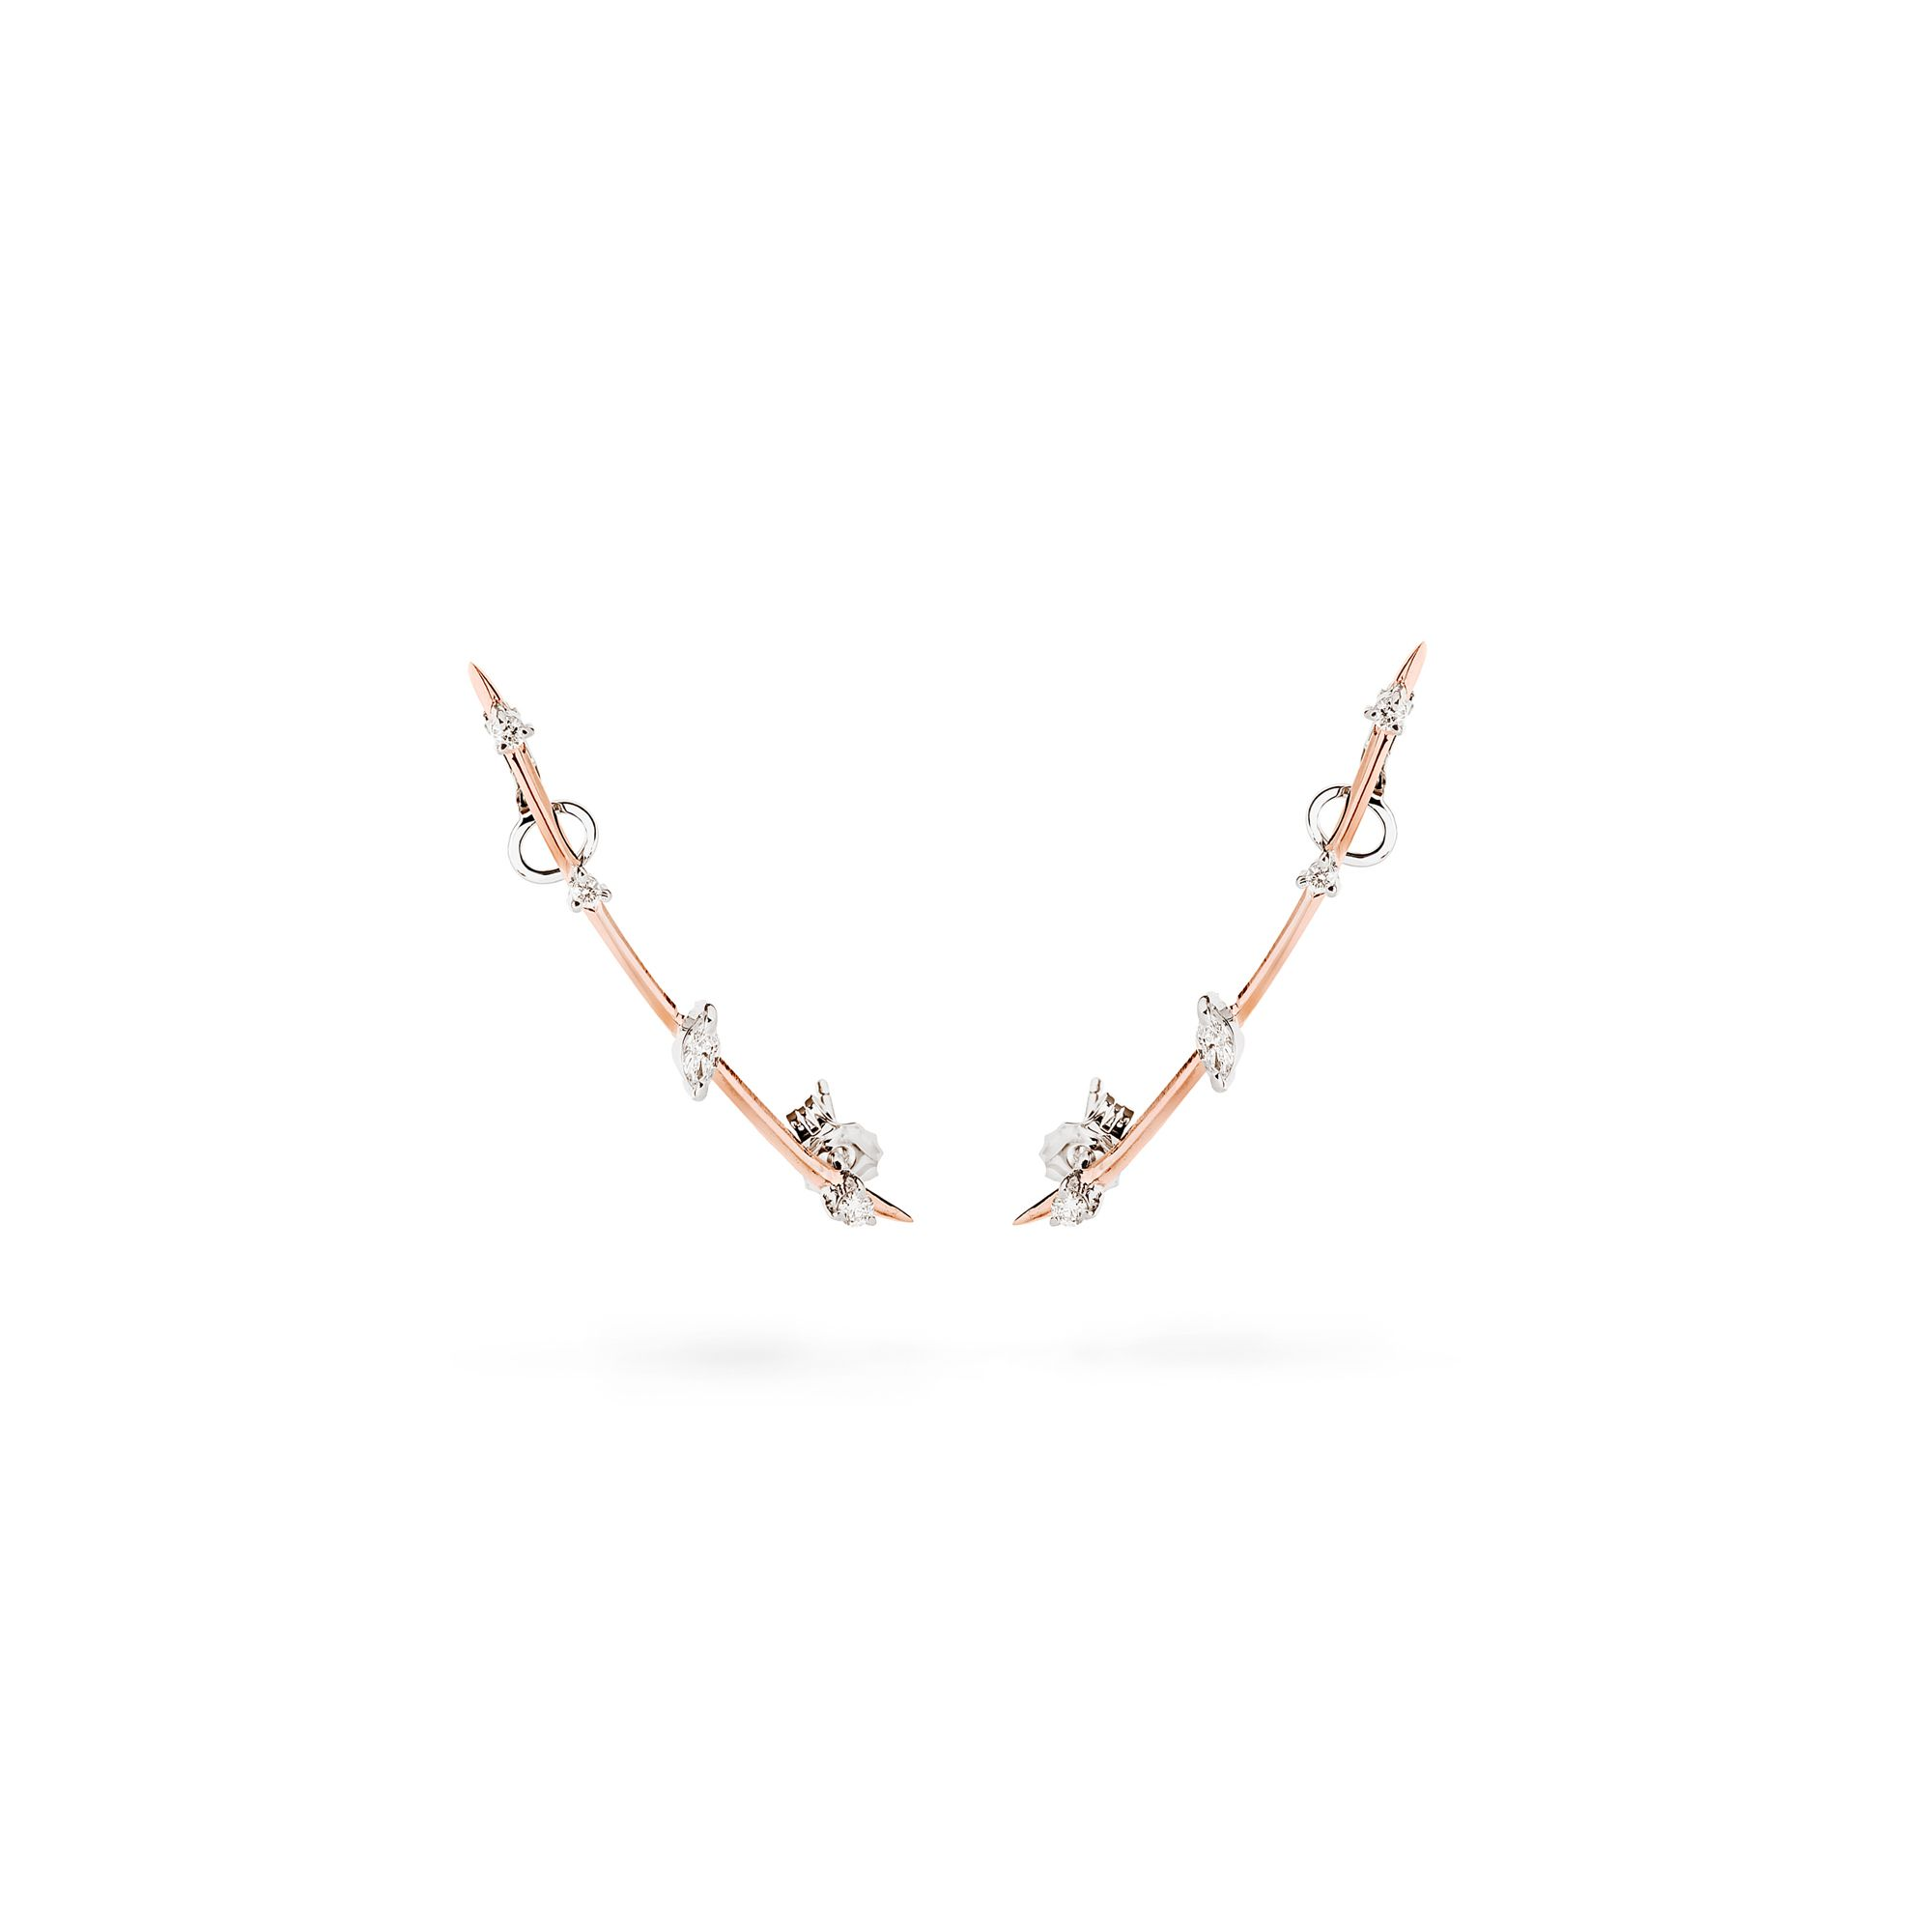 Rose gold 'Lance' earrings Earrings in rose gold and diamonds